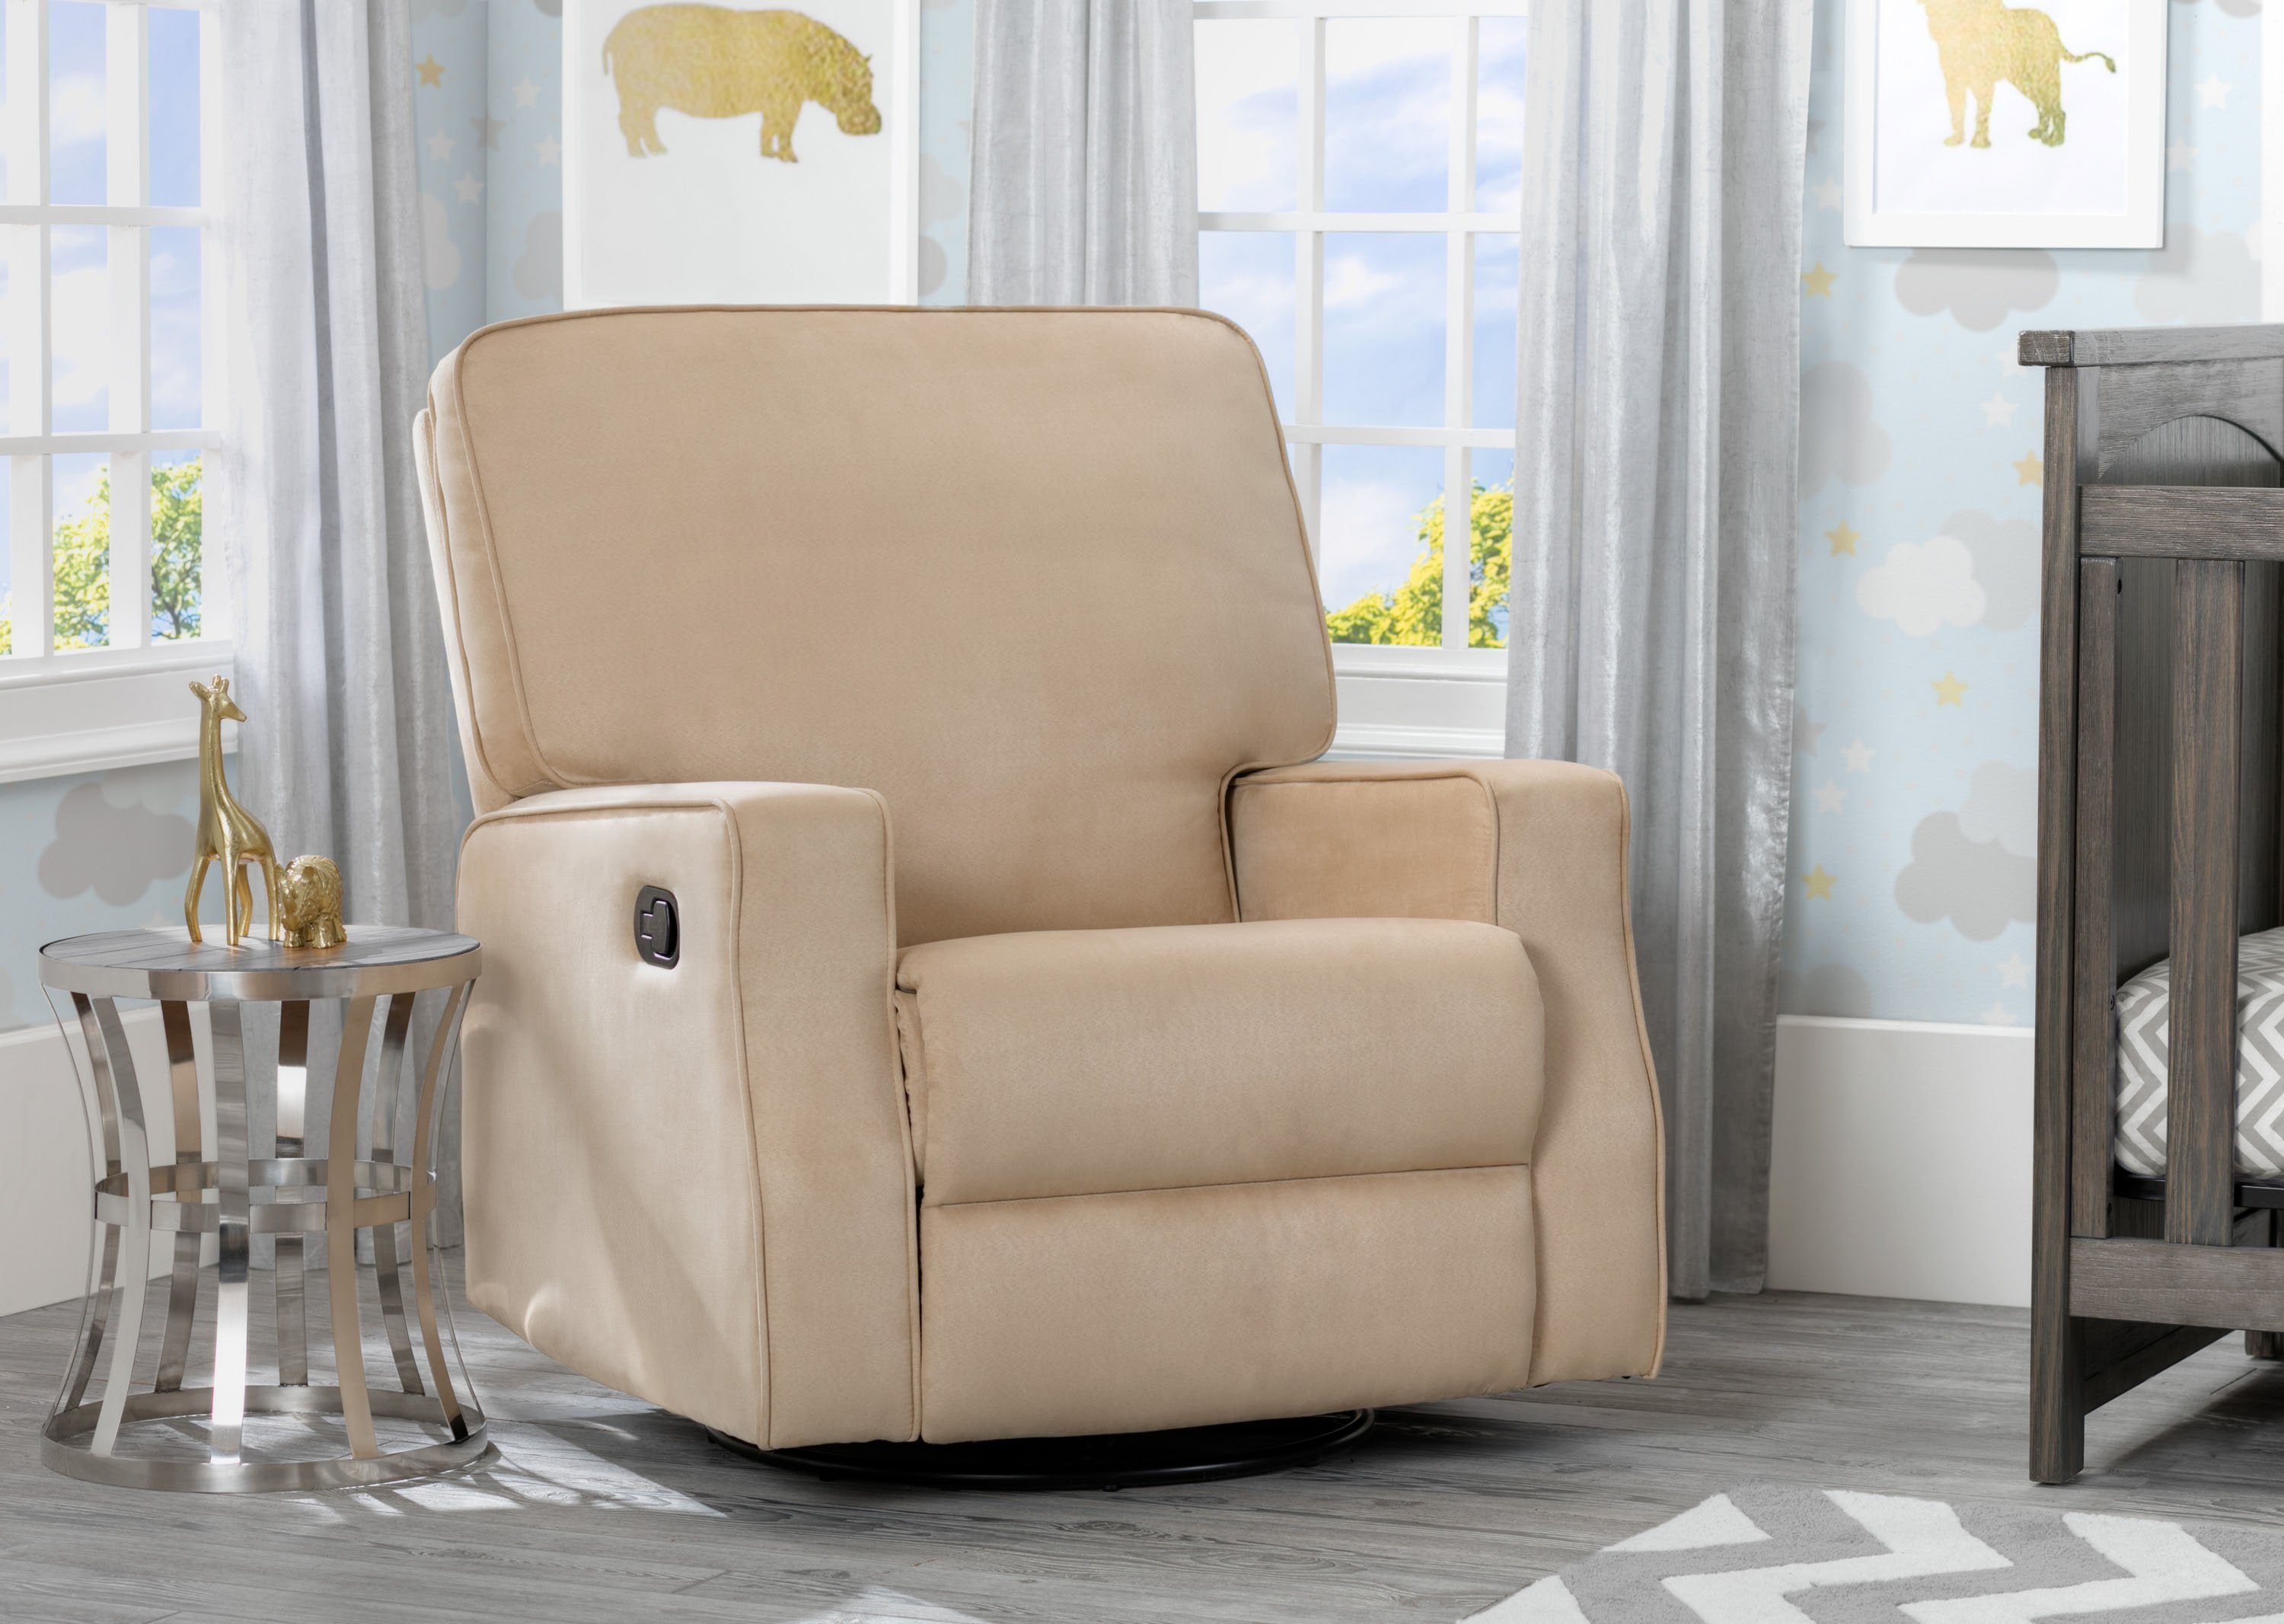 Delta Children Beige (276) Carson Nursery Recliner Swivel Glider Chair  (W3520210C), ...